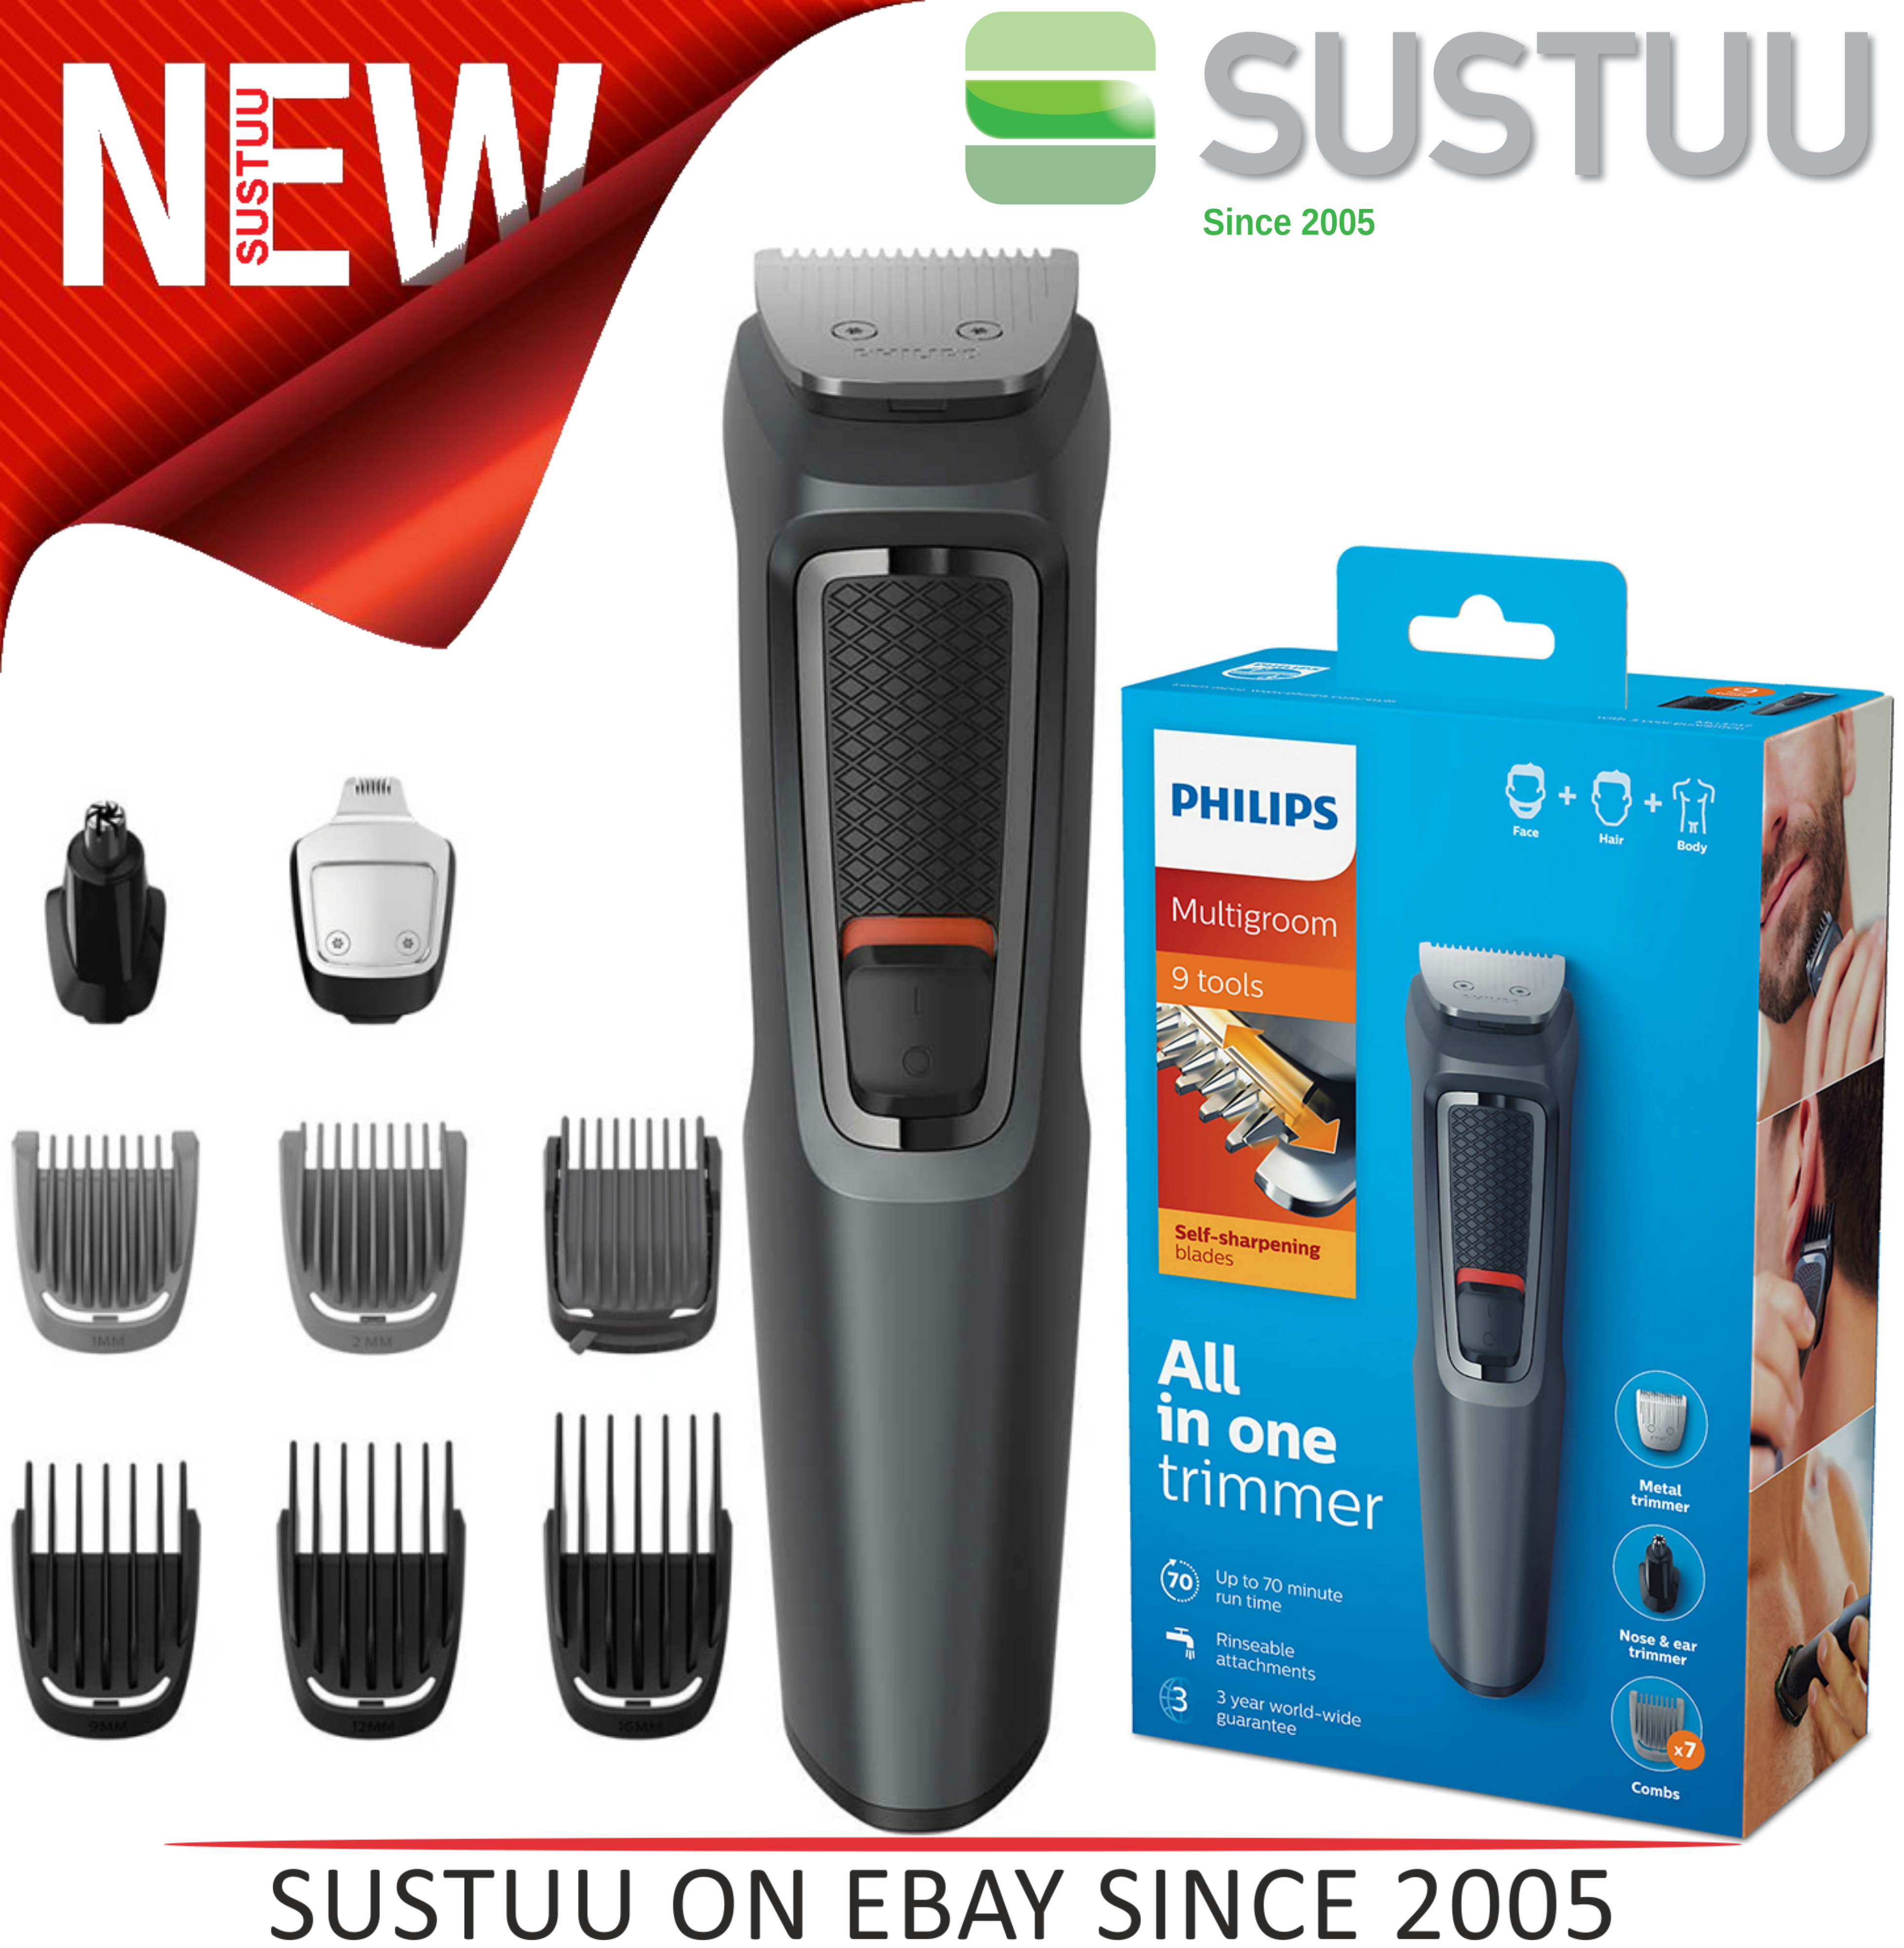 Philips 9 in 1 Multigroom?Face?Nose?Body?Hair?Trimmer Clipper Set?MG3747/13?NEW?